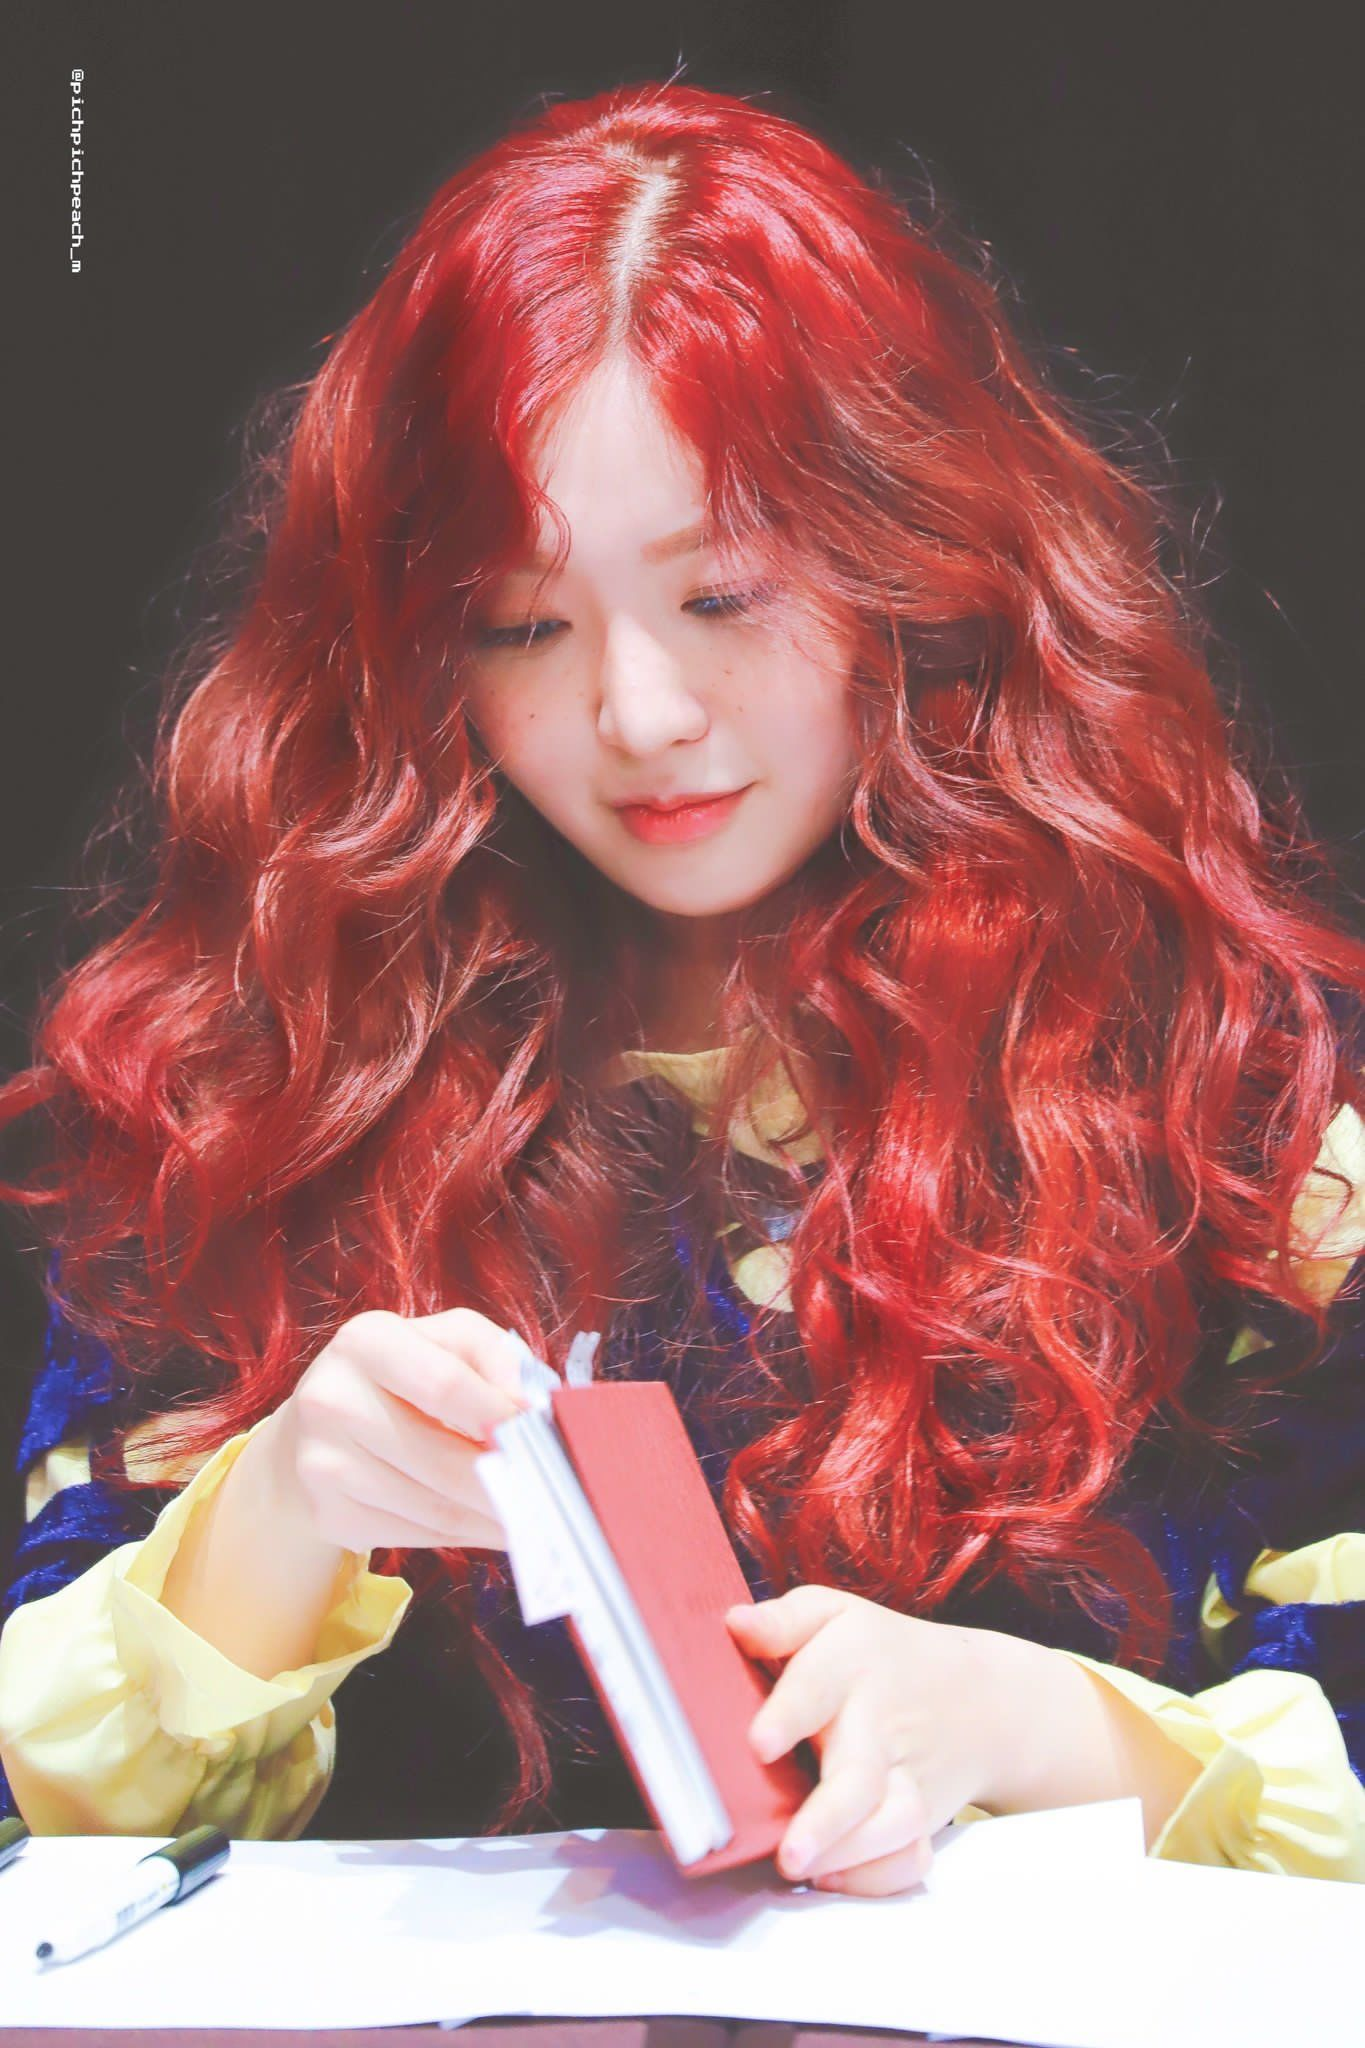 Pin By Lulamulala On Aoa Chanmi In 2020 Kpop Hair Color Red Hair Outfits Girls With Red Hair